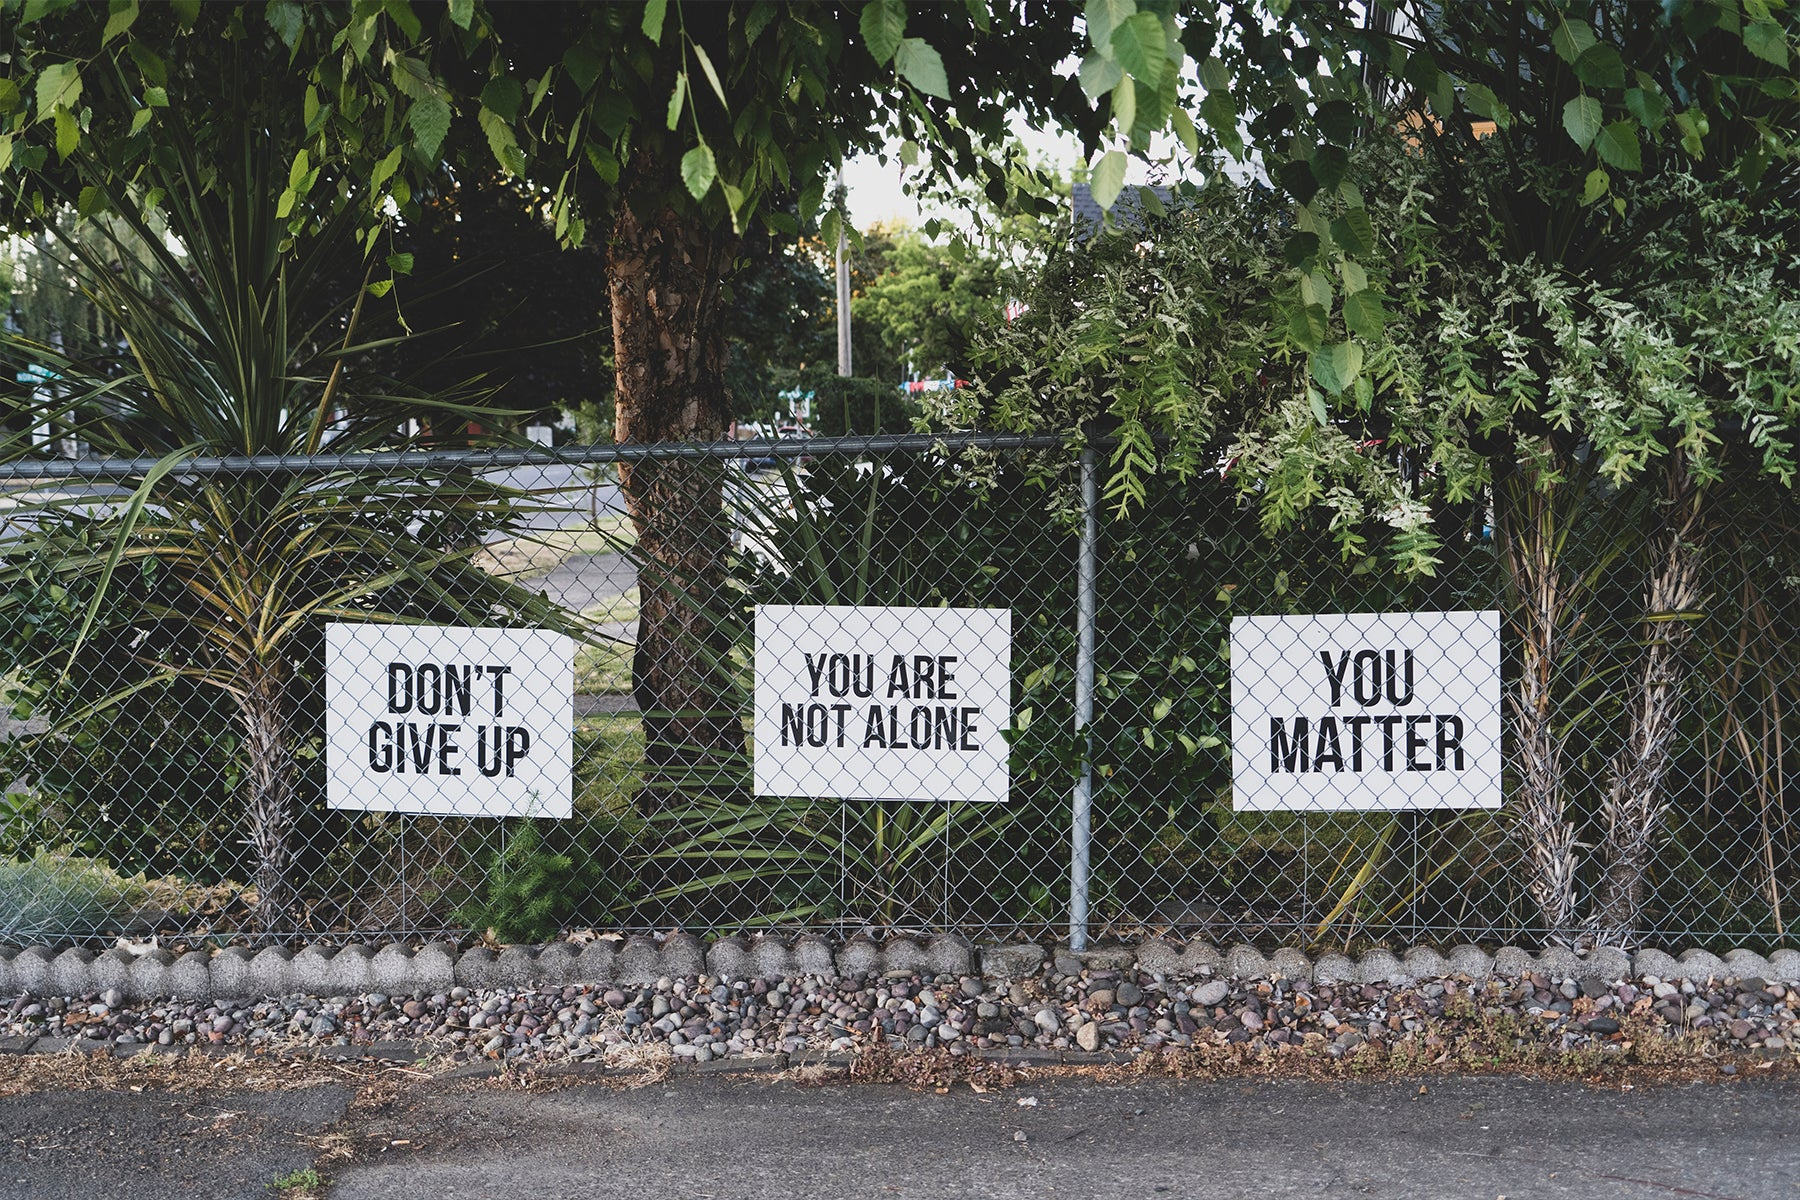 3 signs behind a chain link fence reading, Don't Give Up, You Are Not Alone, You Matter